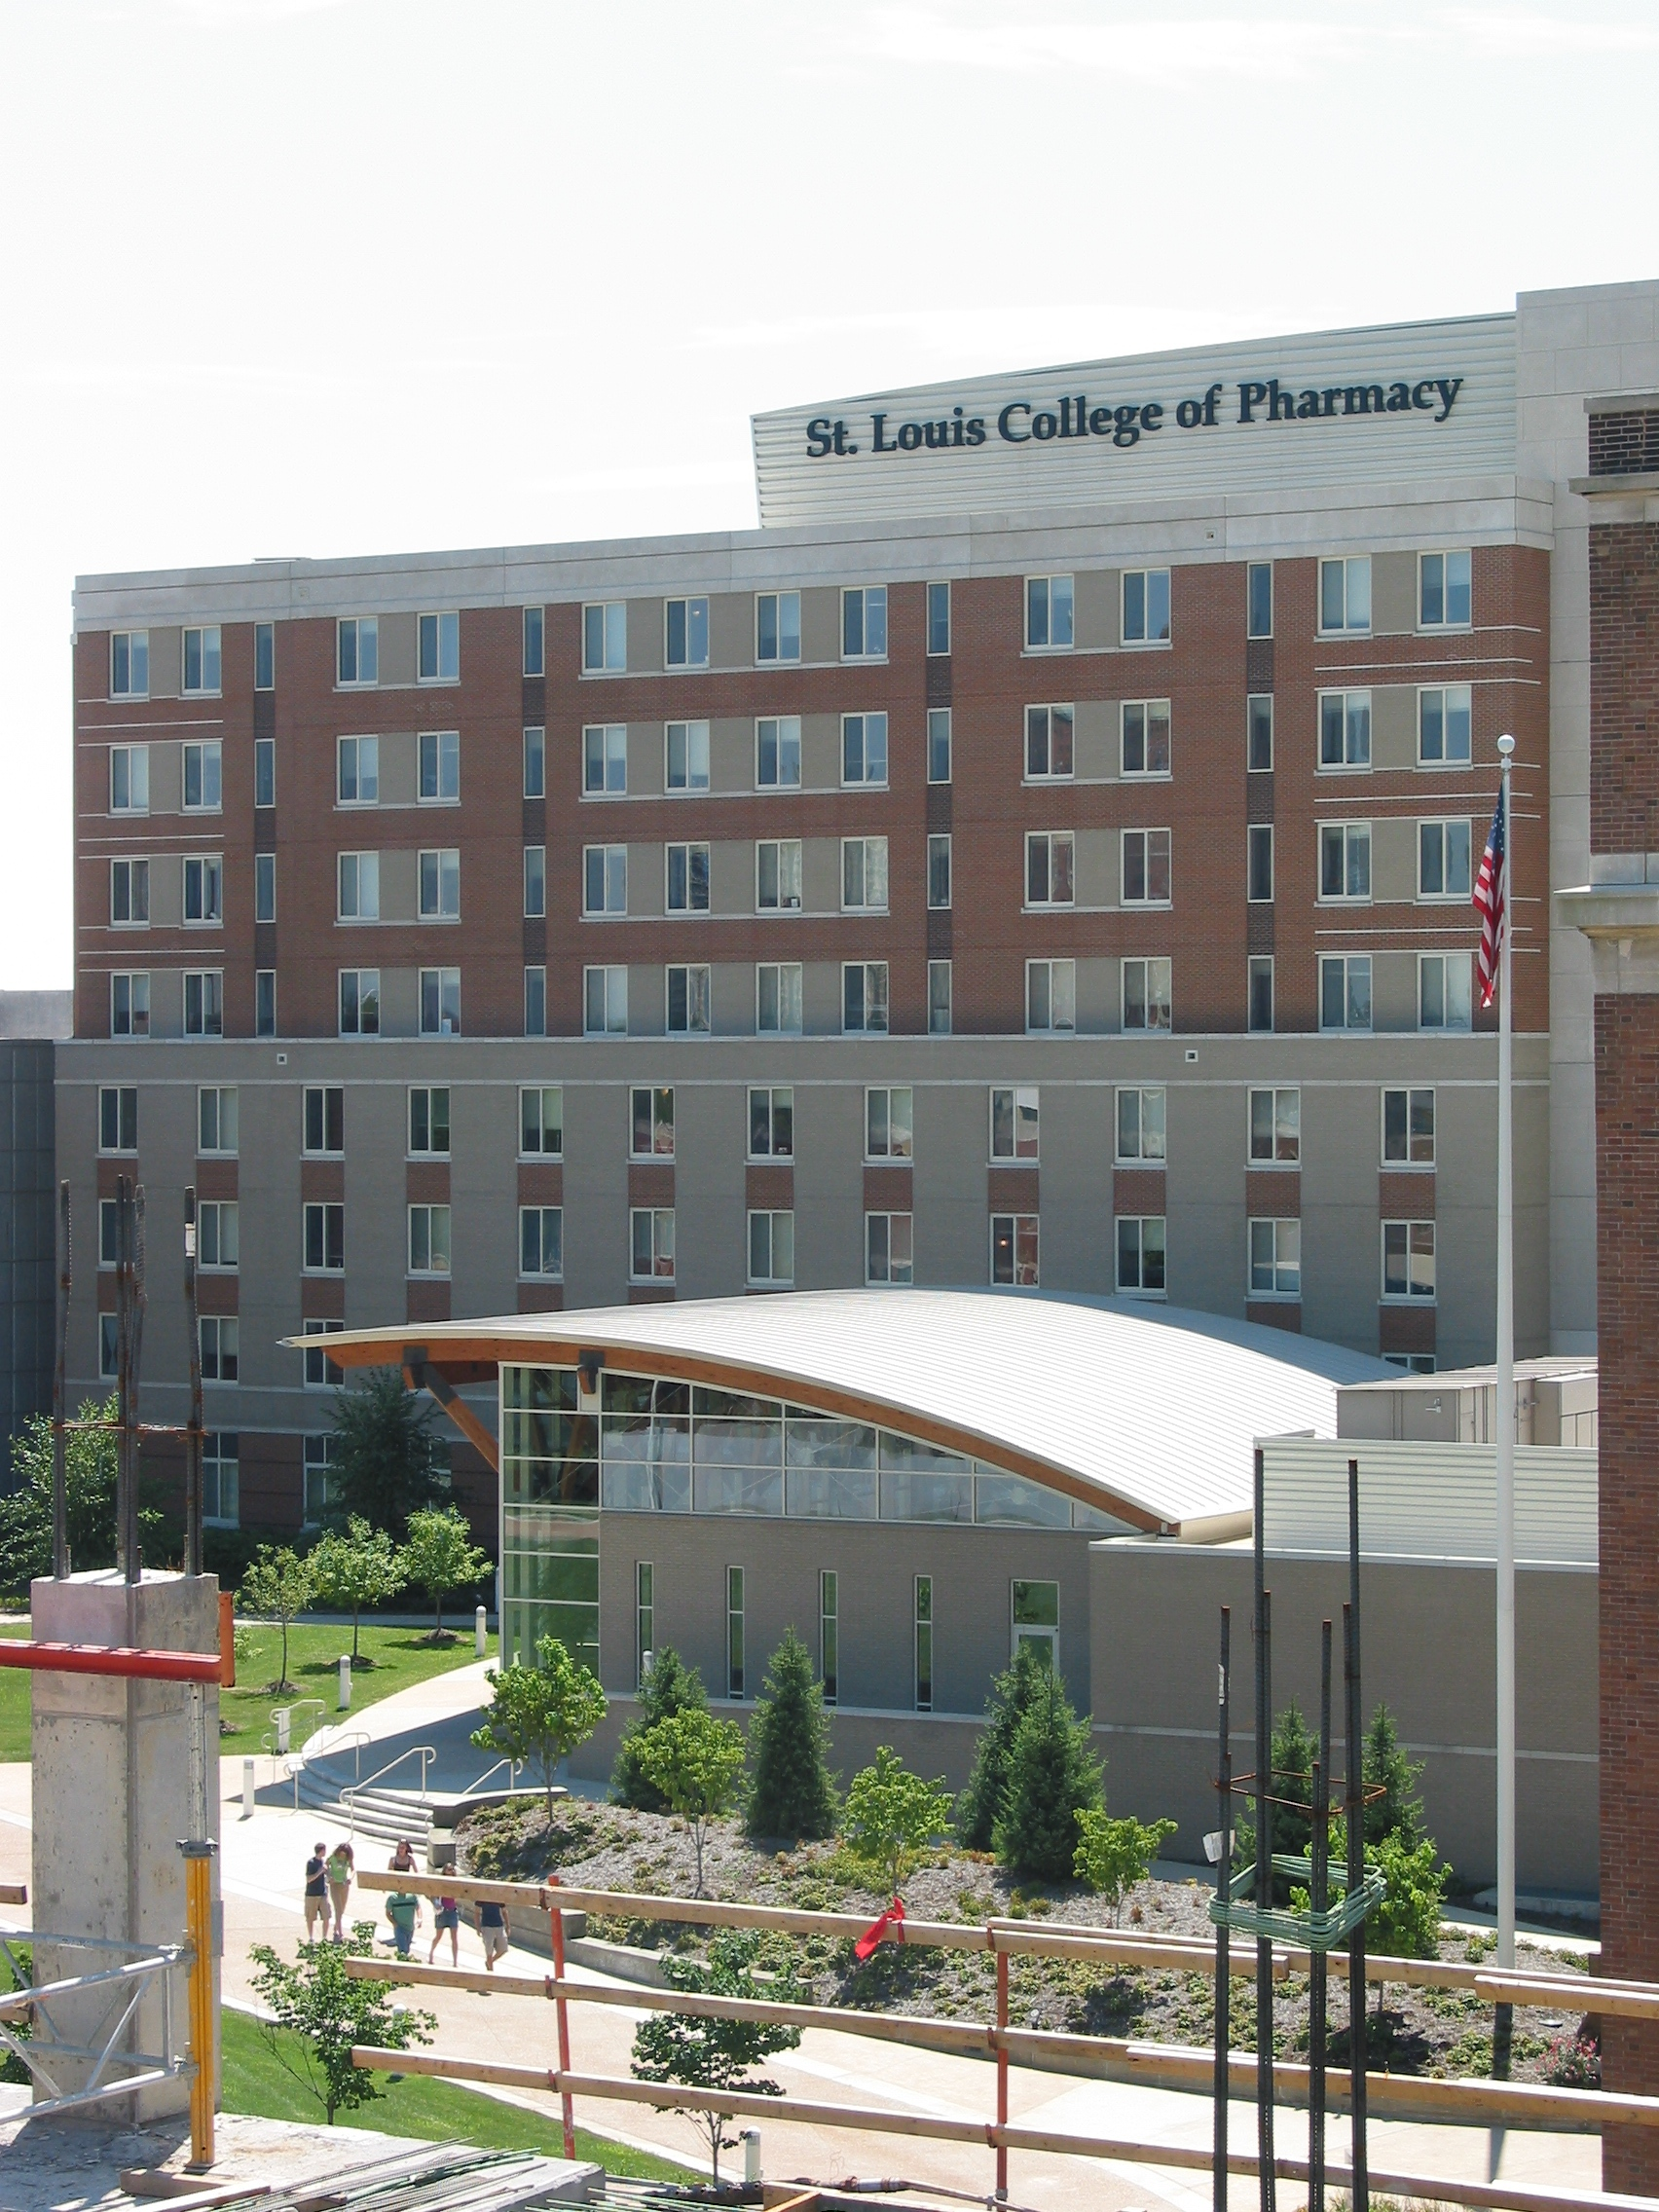 st. louis college of pharmacy application essay Know your chances to get in st louis college of pharmacy from average test scores and application requirements where acceptance ratio was 7143% in 2017.